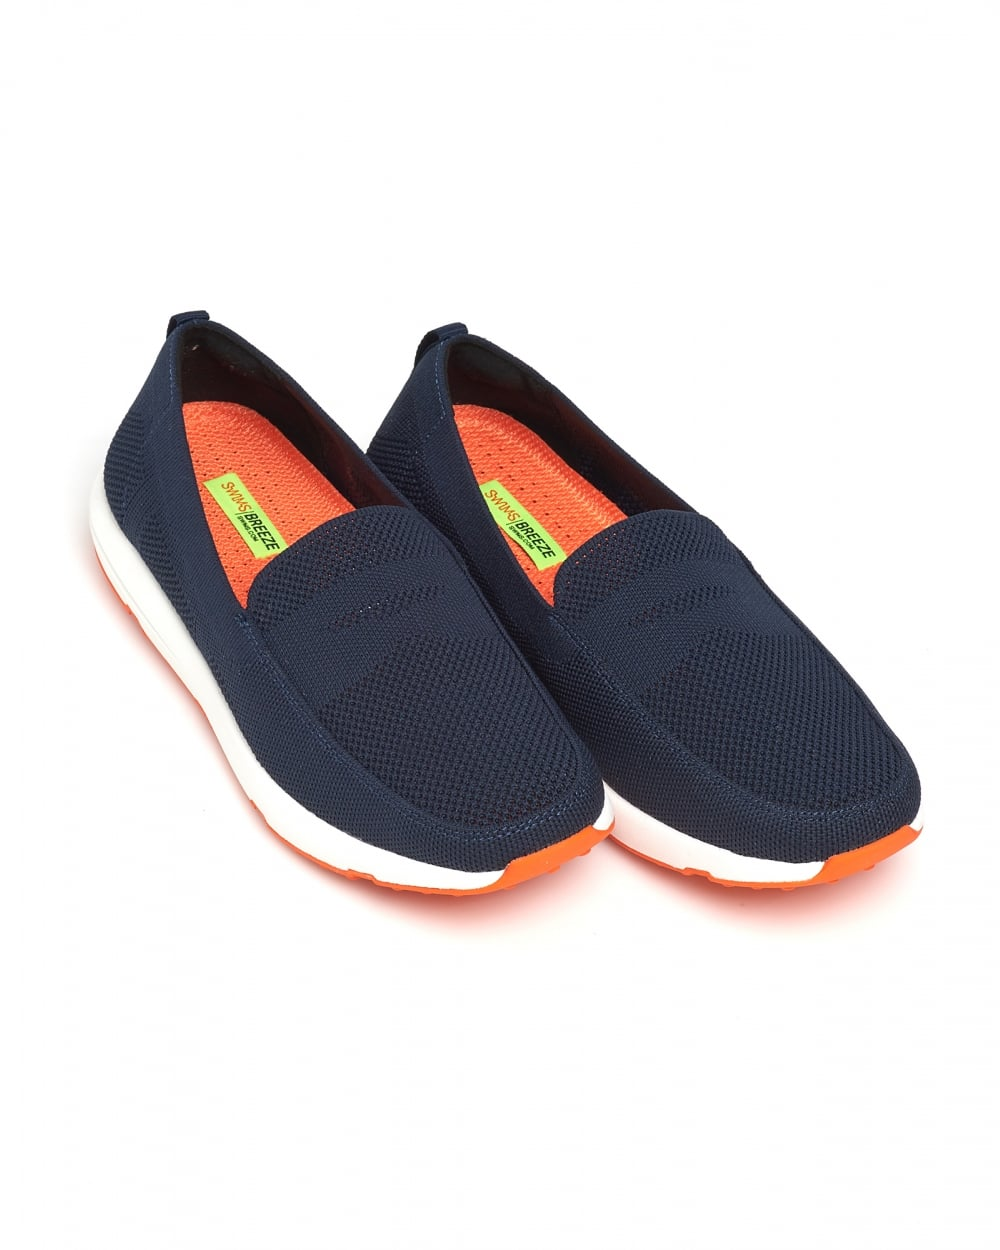 Swims Mens Breeze Leap Knit Penny Loafers, Navy Blue Shoes